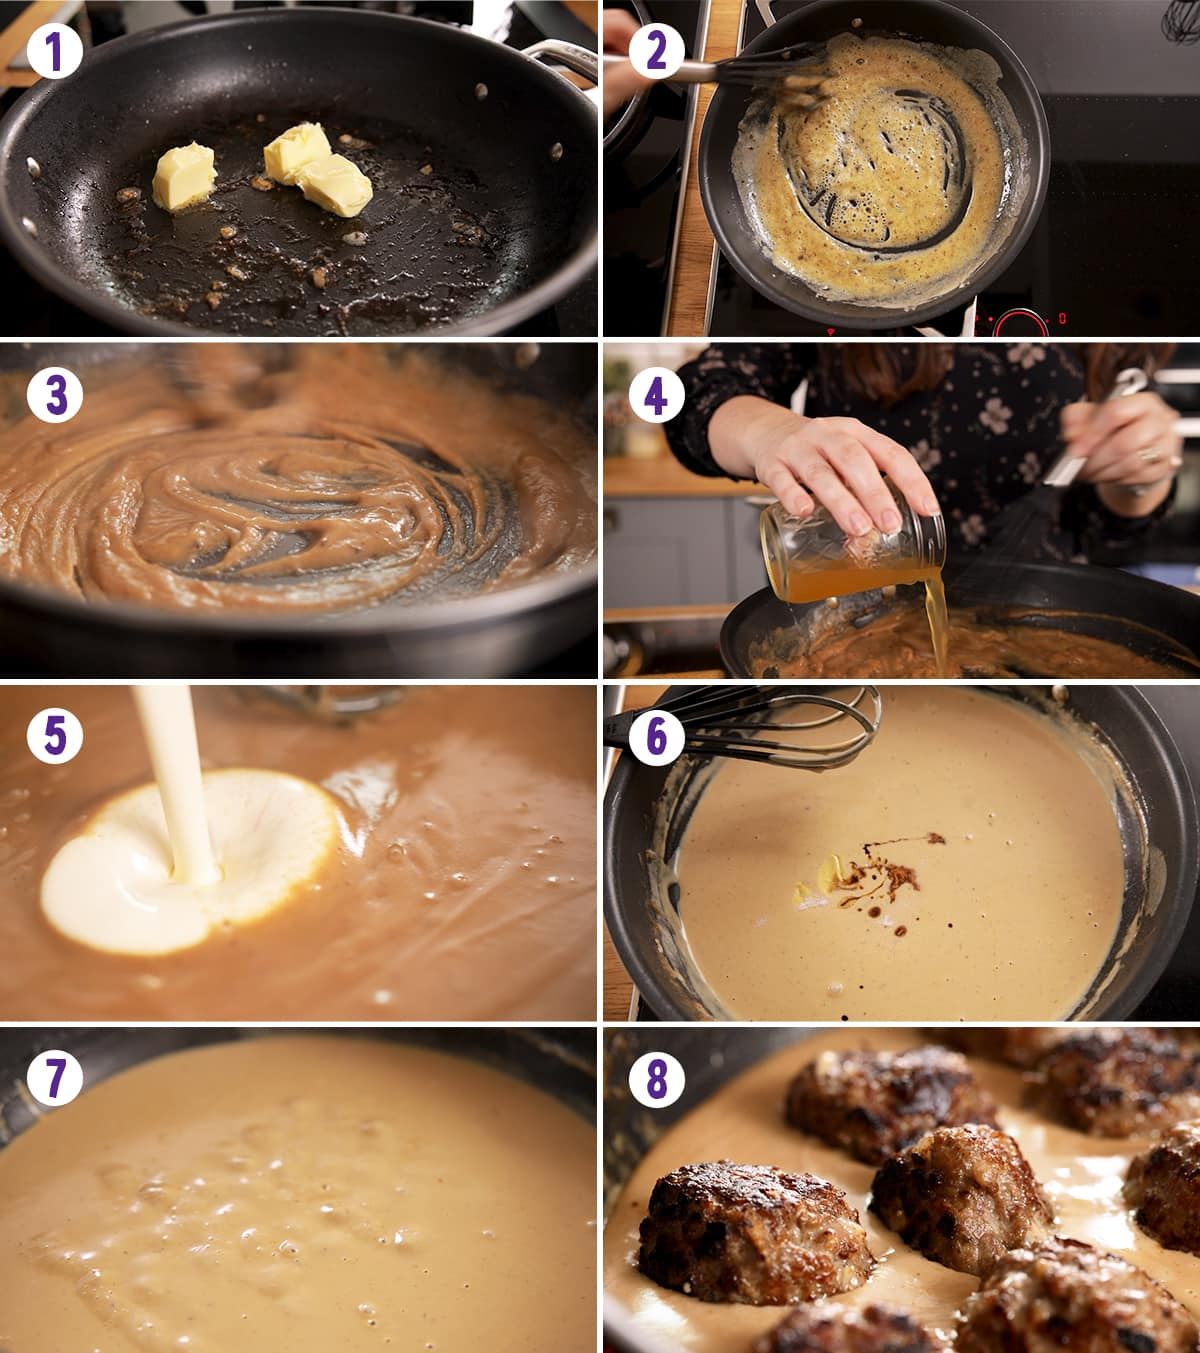 8 image collage showing how to make the sauce for Swedish meatballs